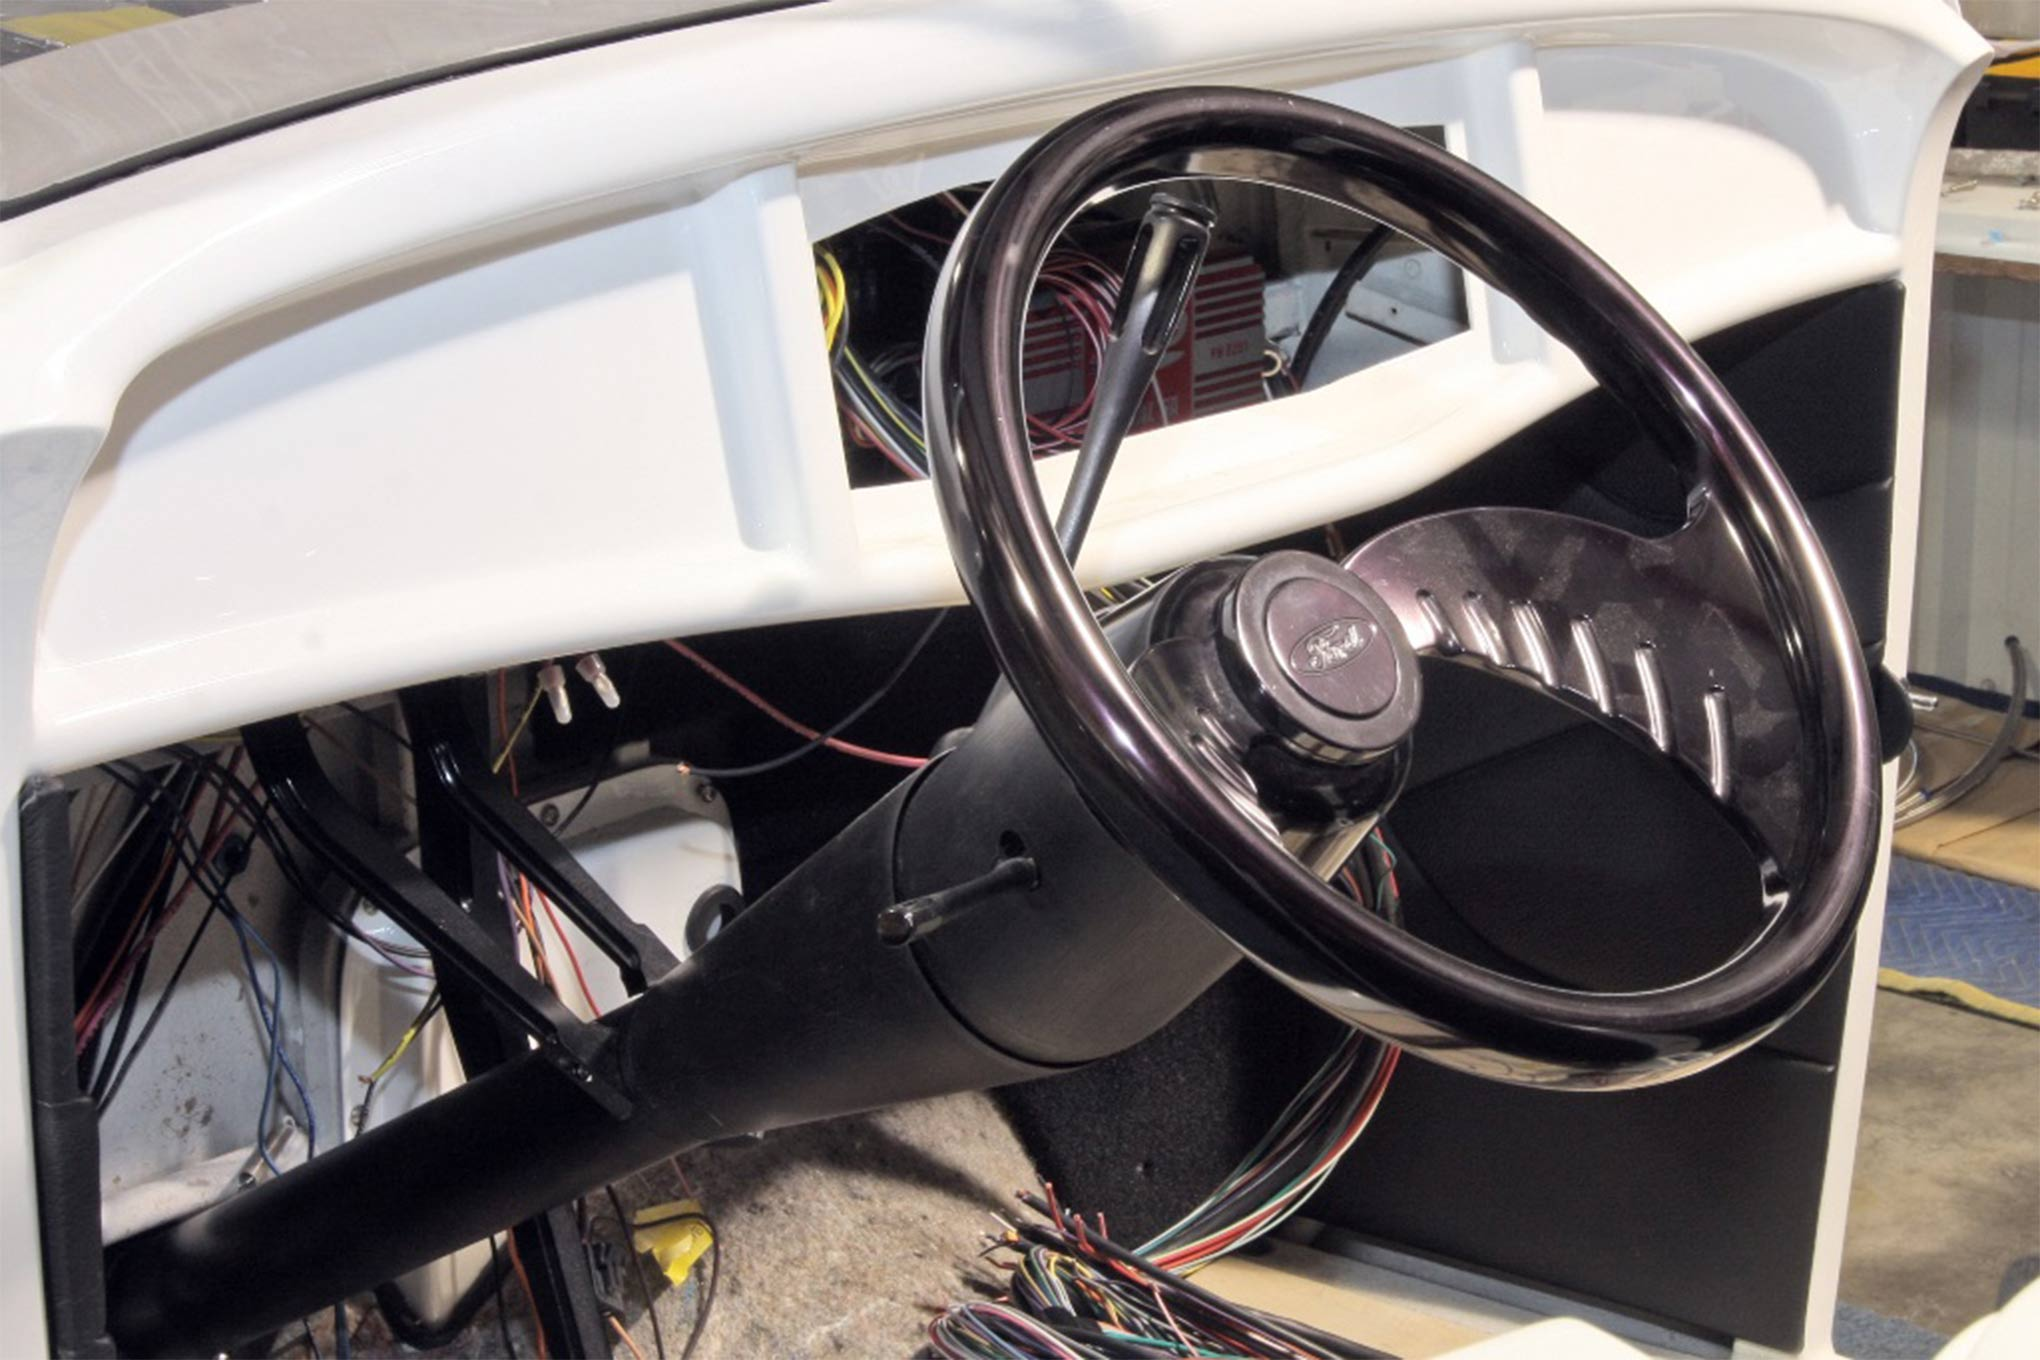 A three-spoke steering wheel dressed up the interior 27 years ago. This wheel was on the roadster when we visited it recently.